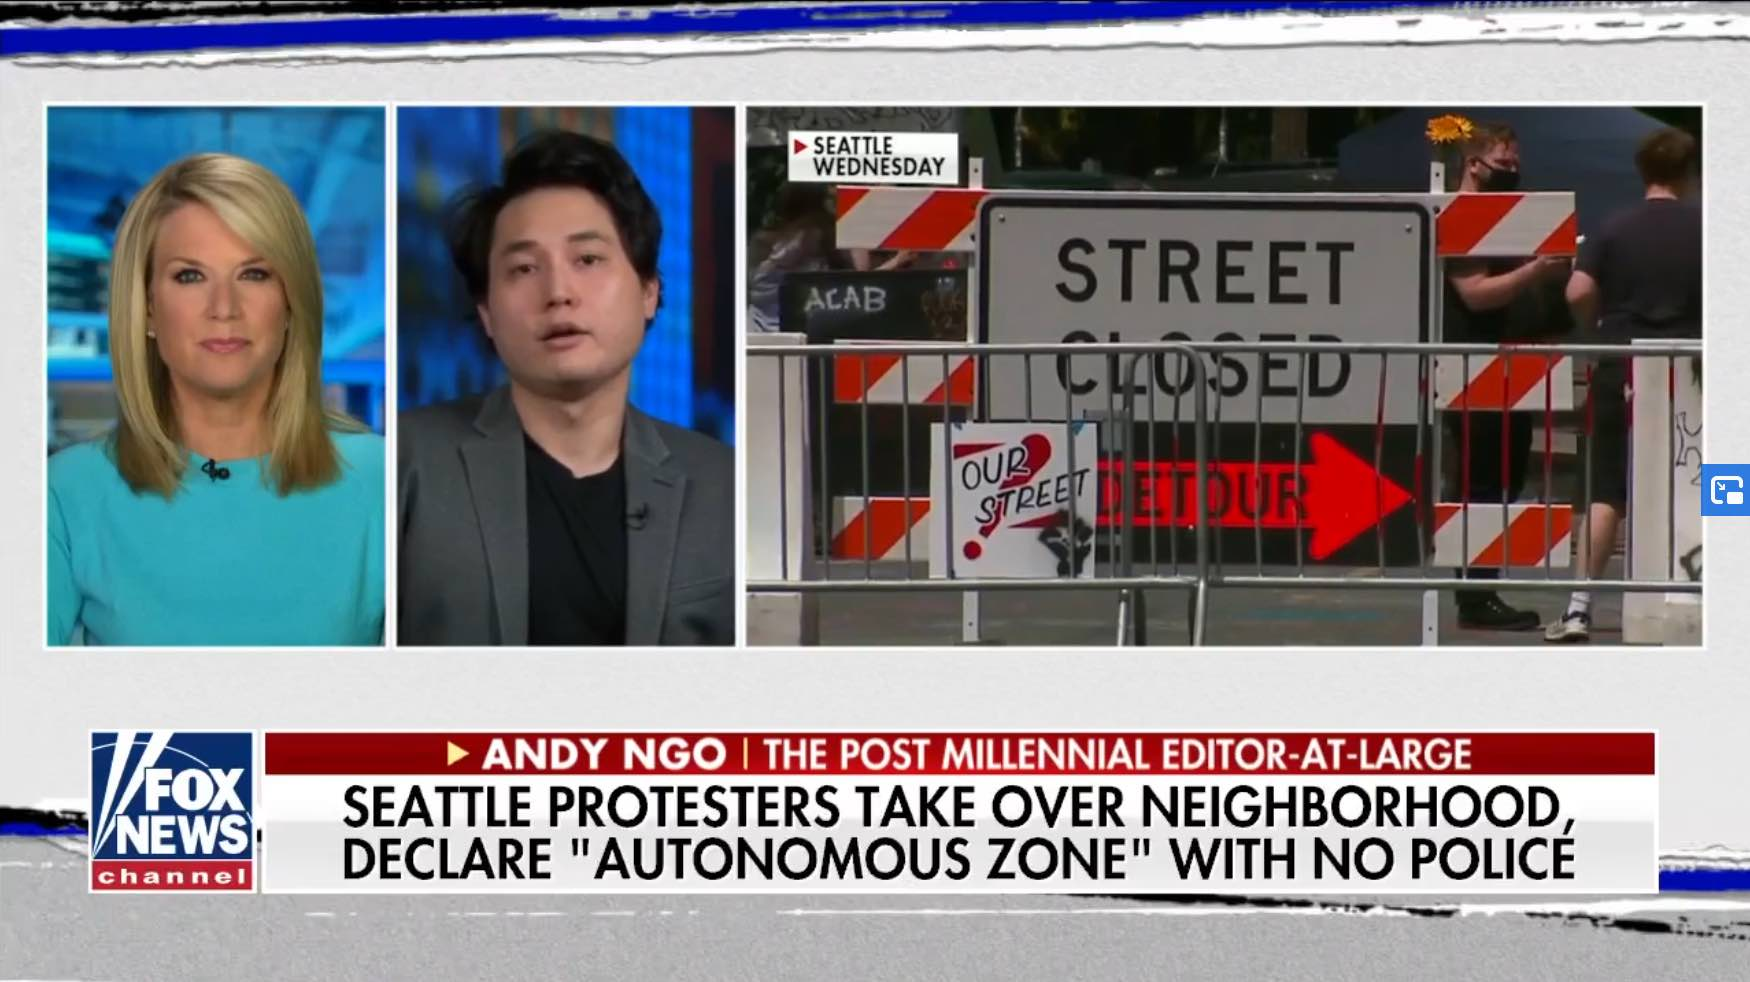 WATCH: Andy Ngo explains the anarchy in Seattle's 'autonomous zone' on Fox News